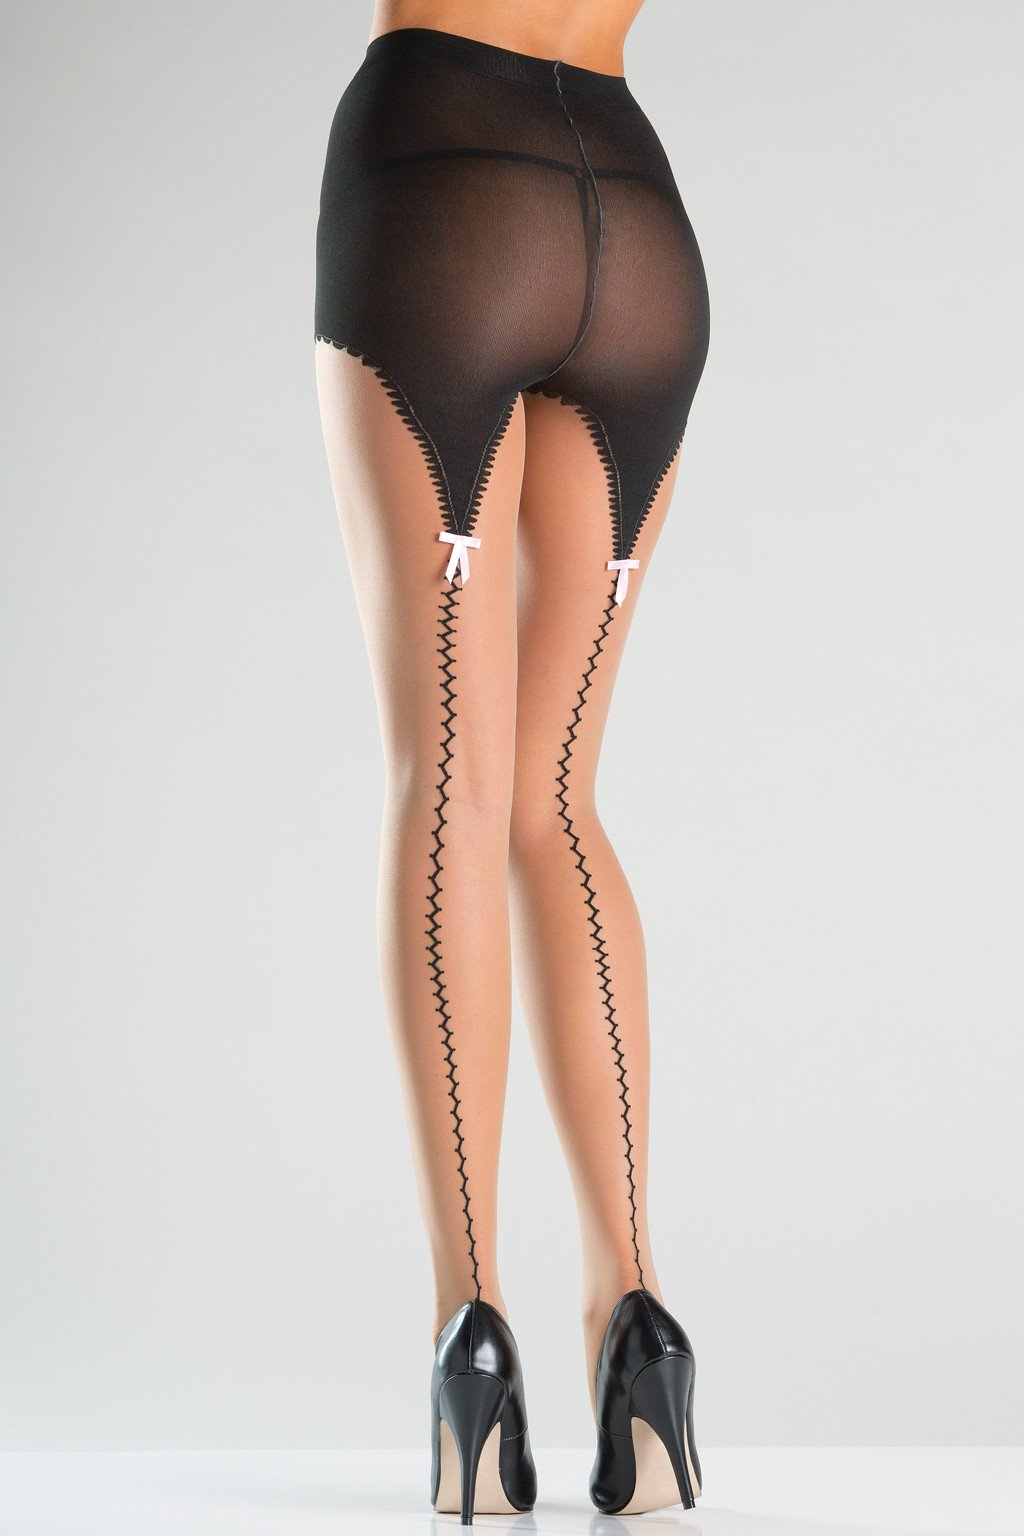 Pinup Doll seamed garter Tights - shopjessicalouise.com